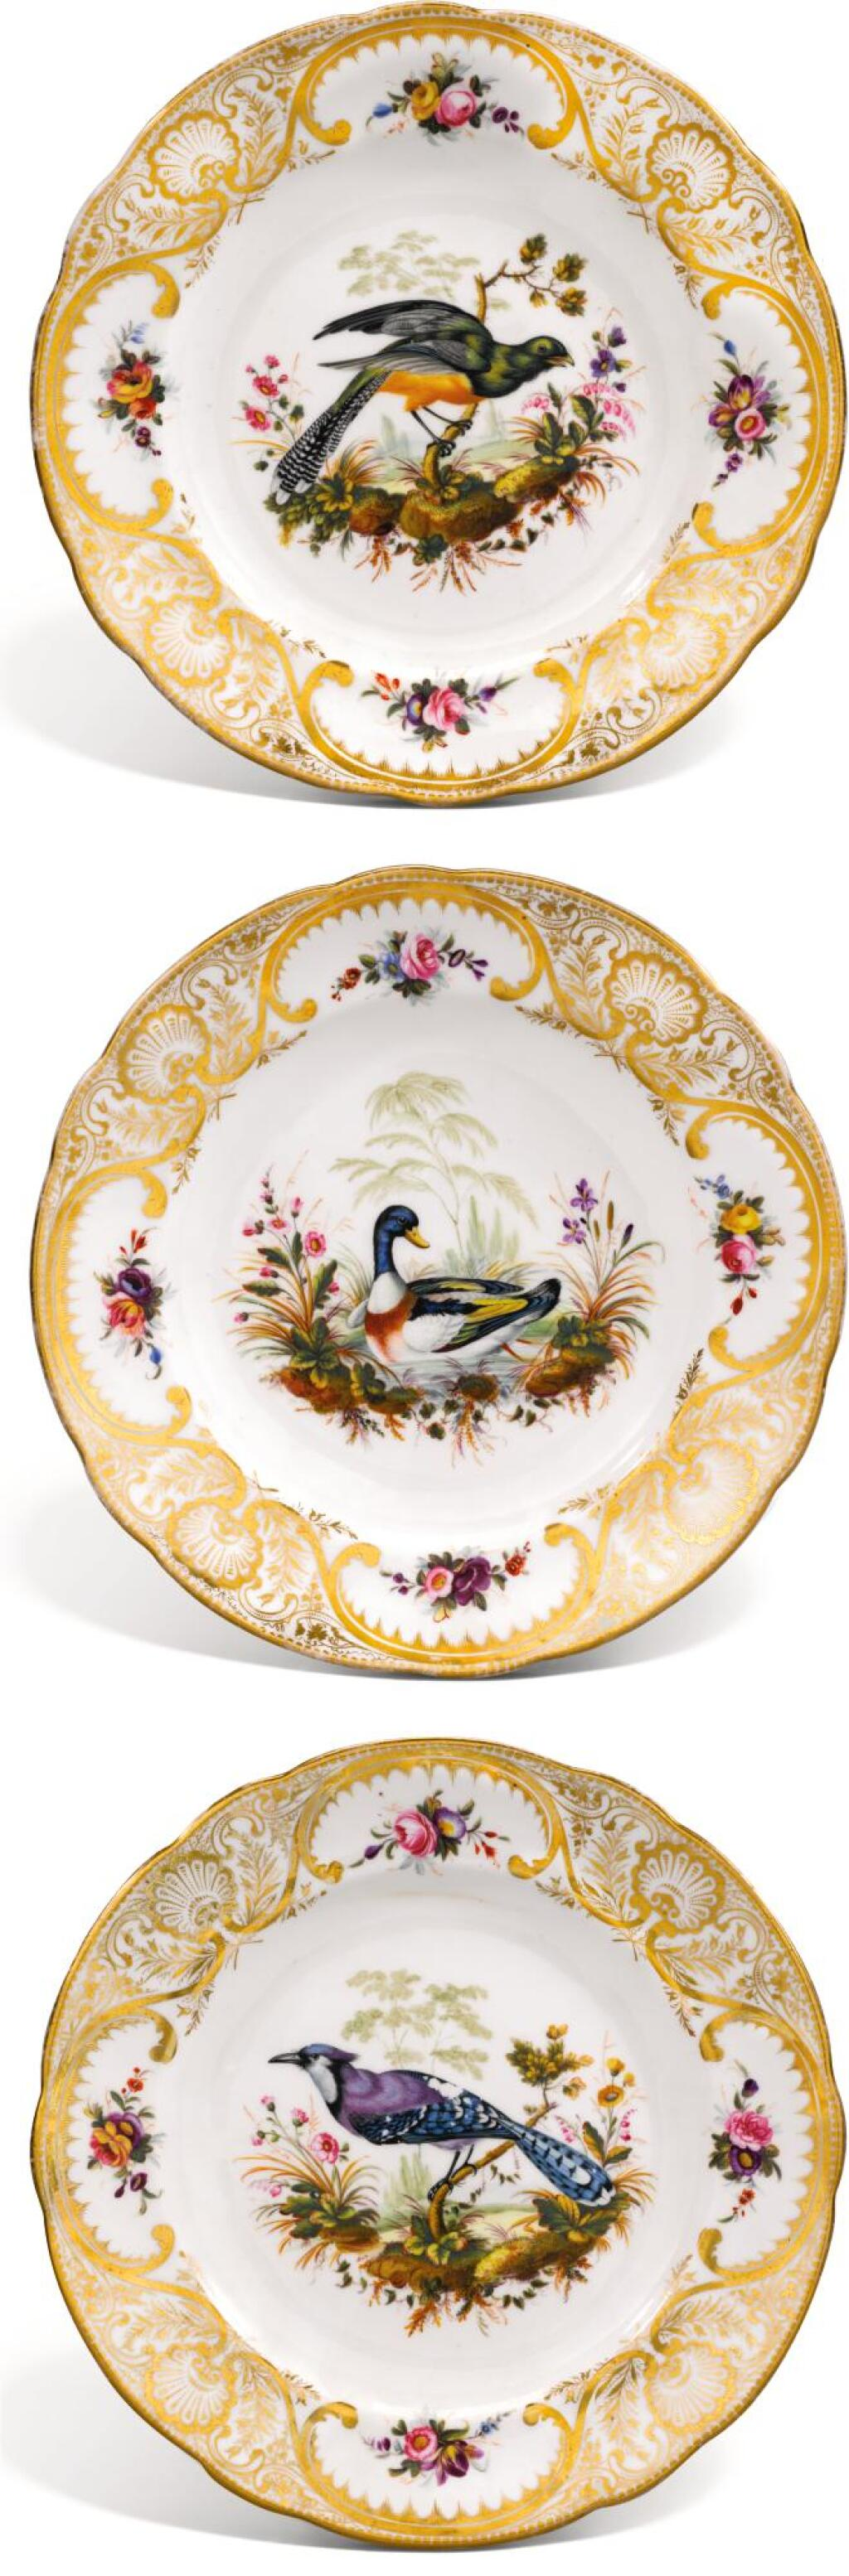 THREE NANTGARW PLATES, CIRCA 1820